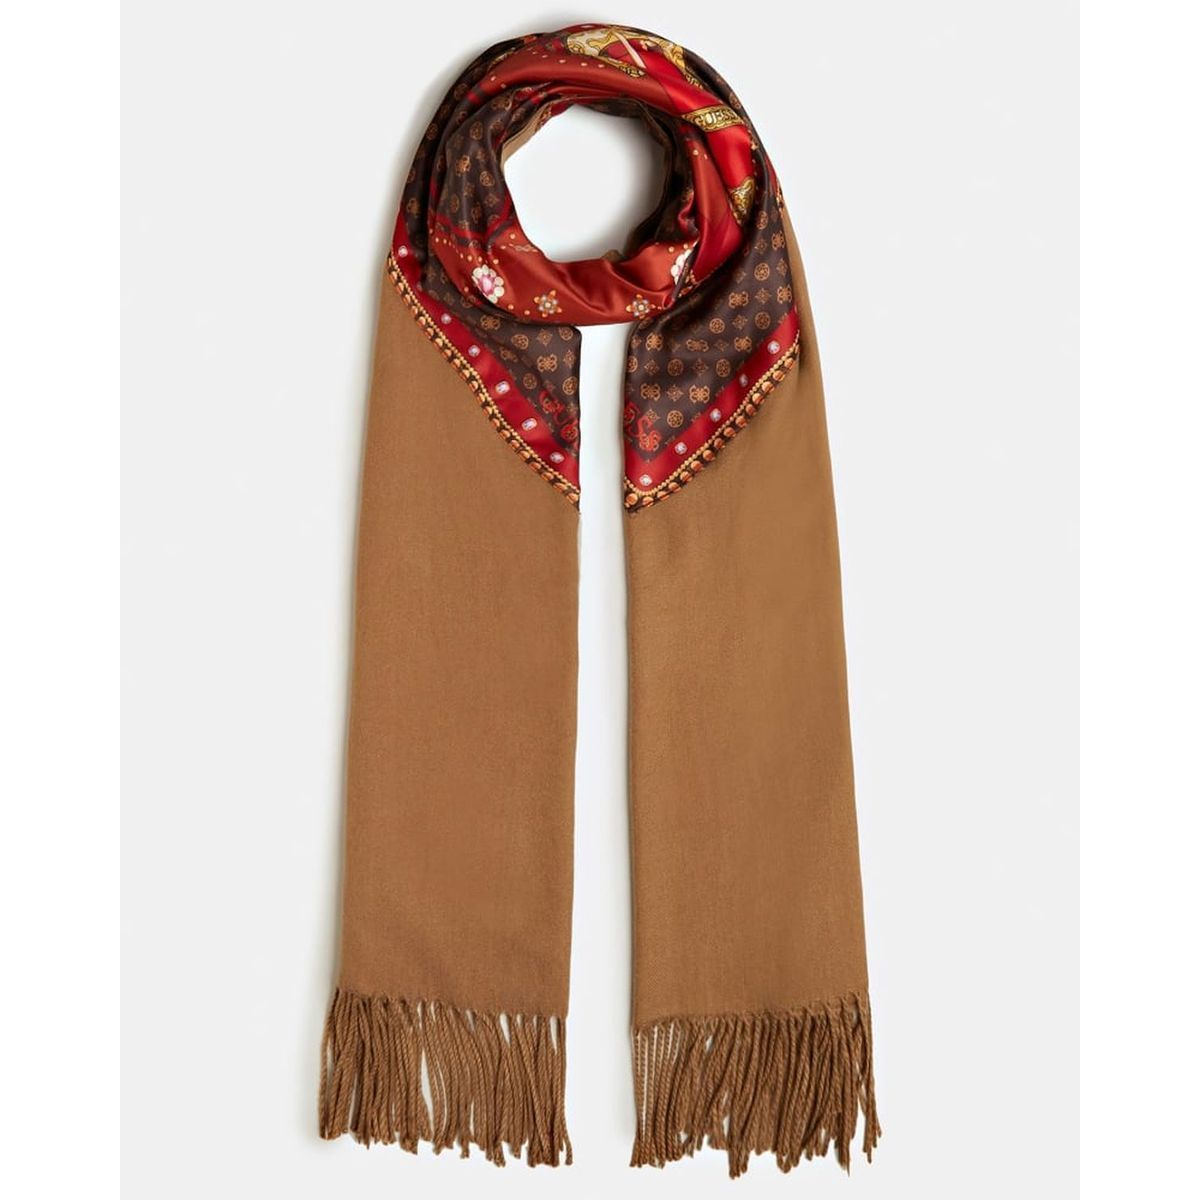 CLARKDALE HILL PRINTED SCARF:CAMEL/POLYESTER/POLYESTER//Camel